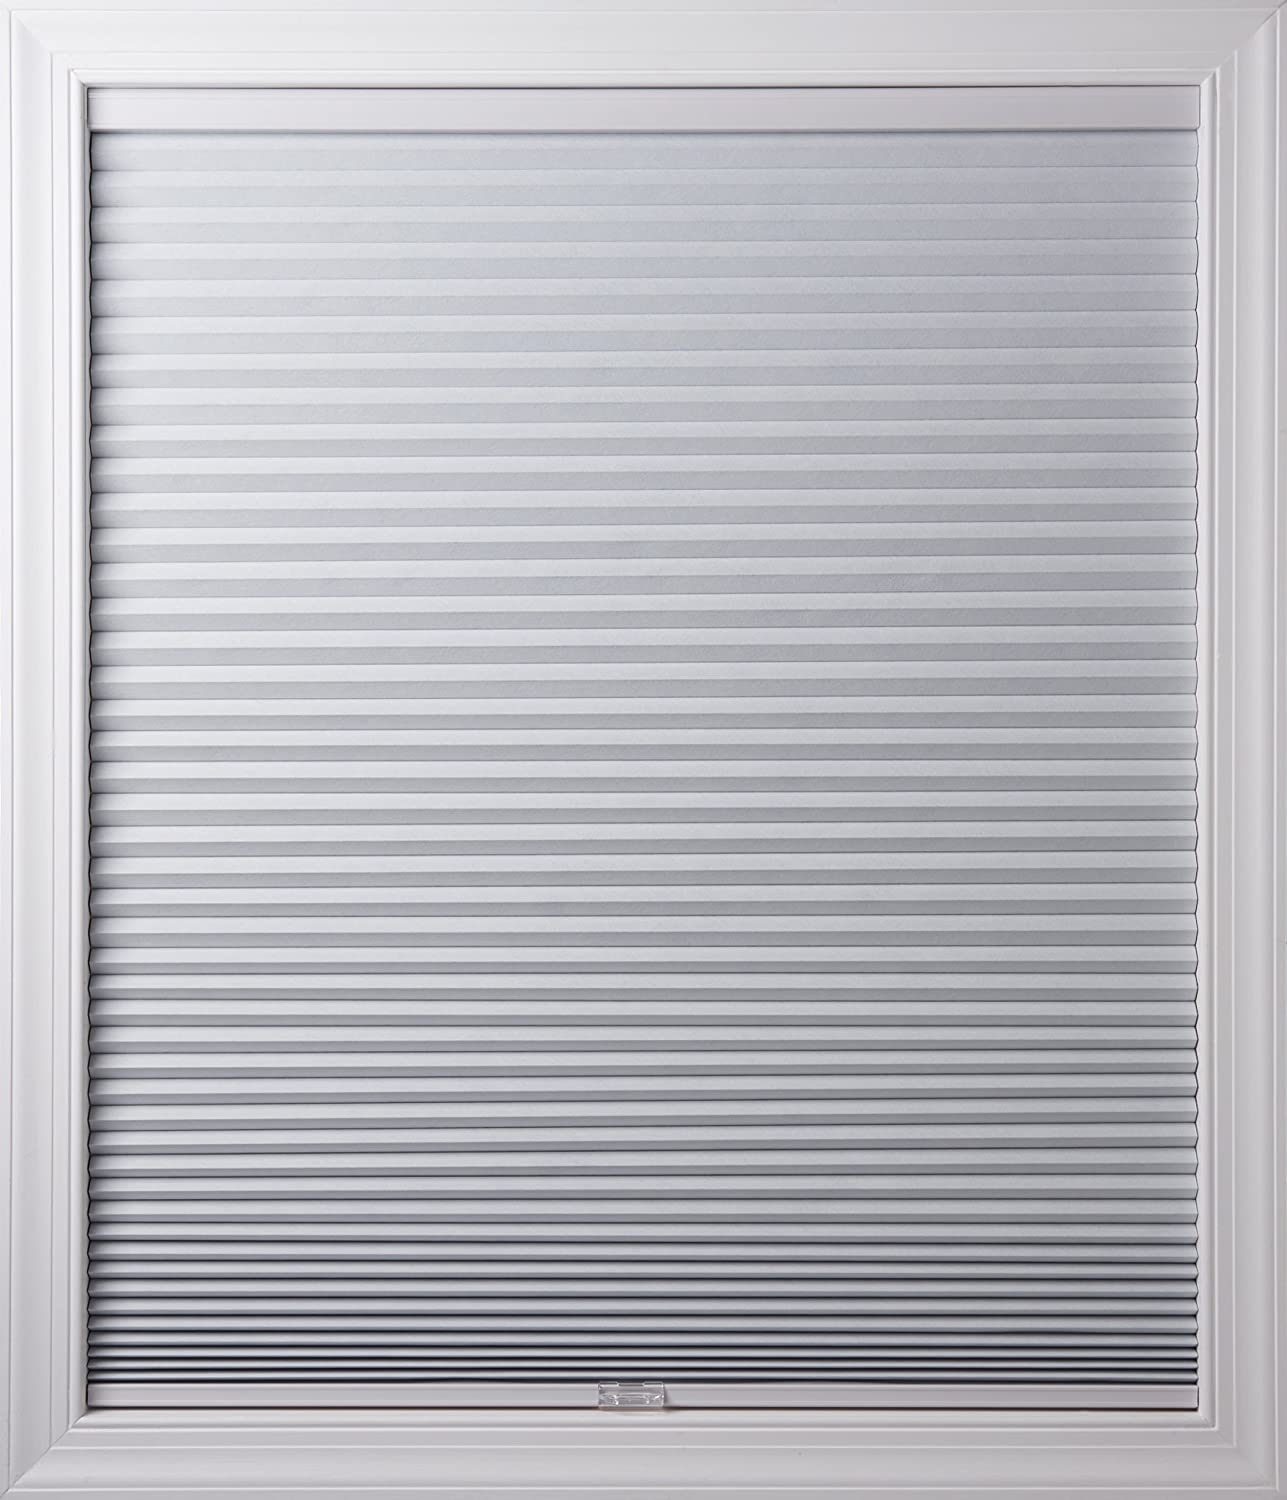 New Limited price Age Blinds Room Darkening Frame Inside Cellul Quantity limited Mount Cordless